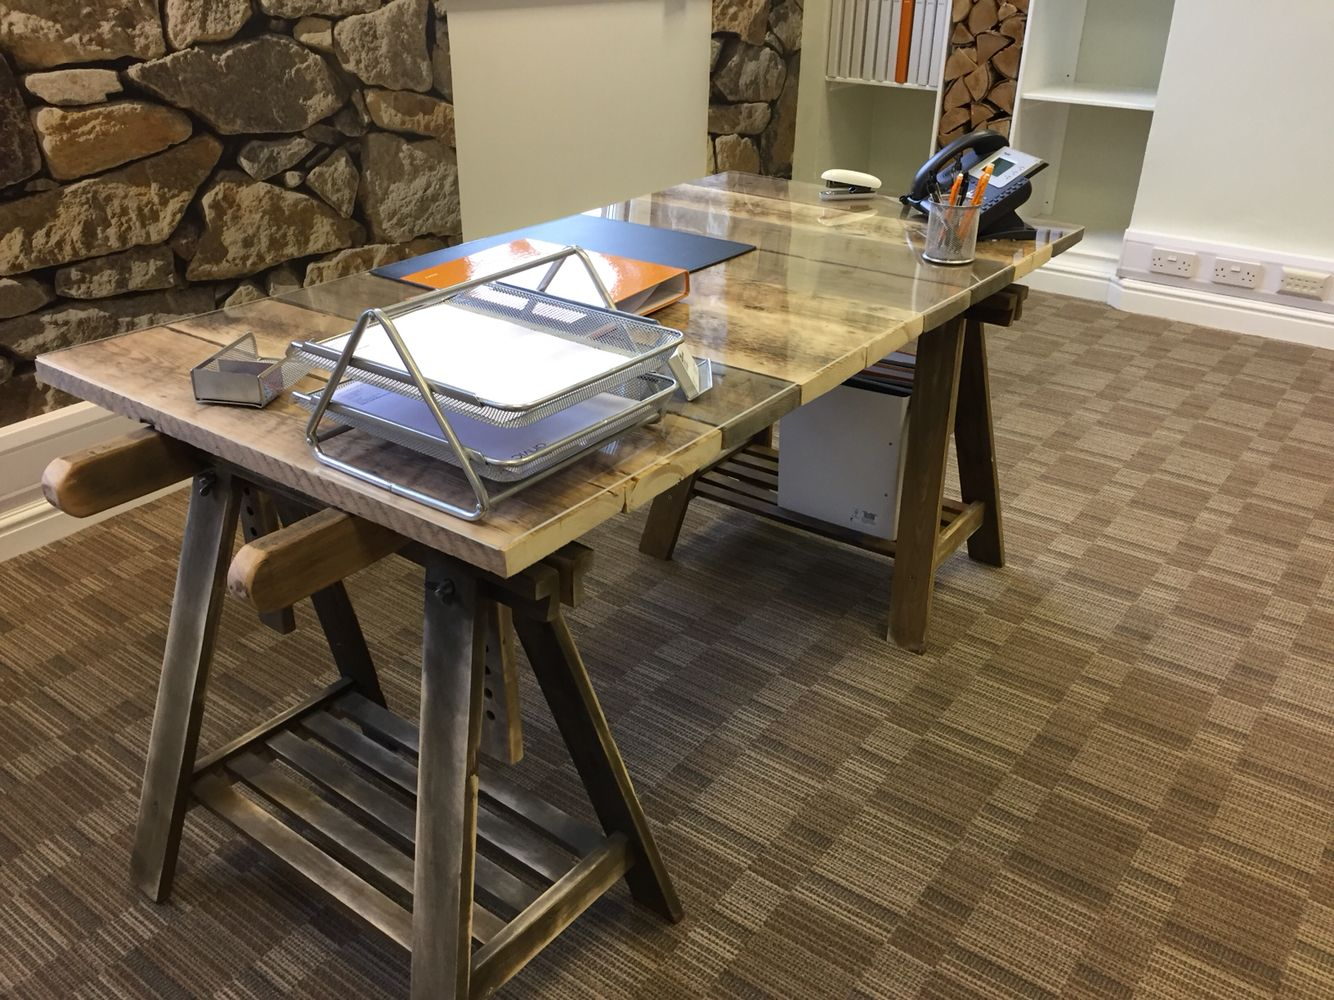 My stunning desk lovingly made with some very old saw horses a